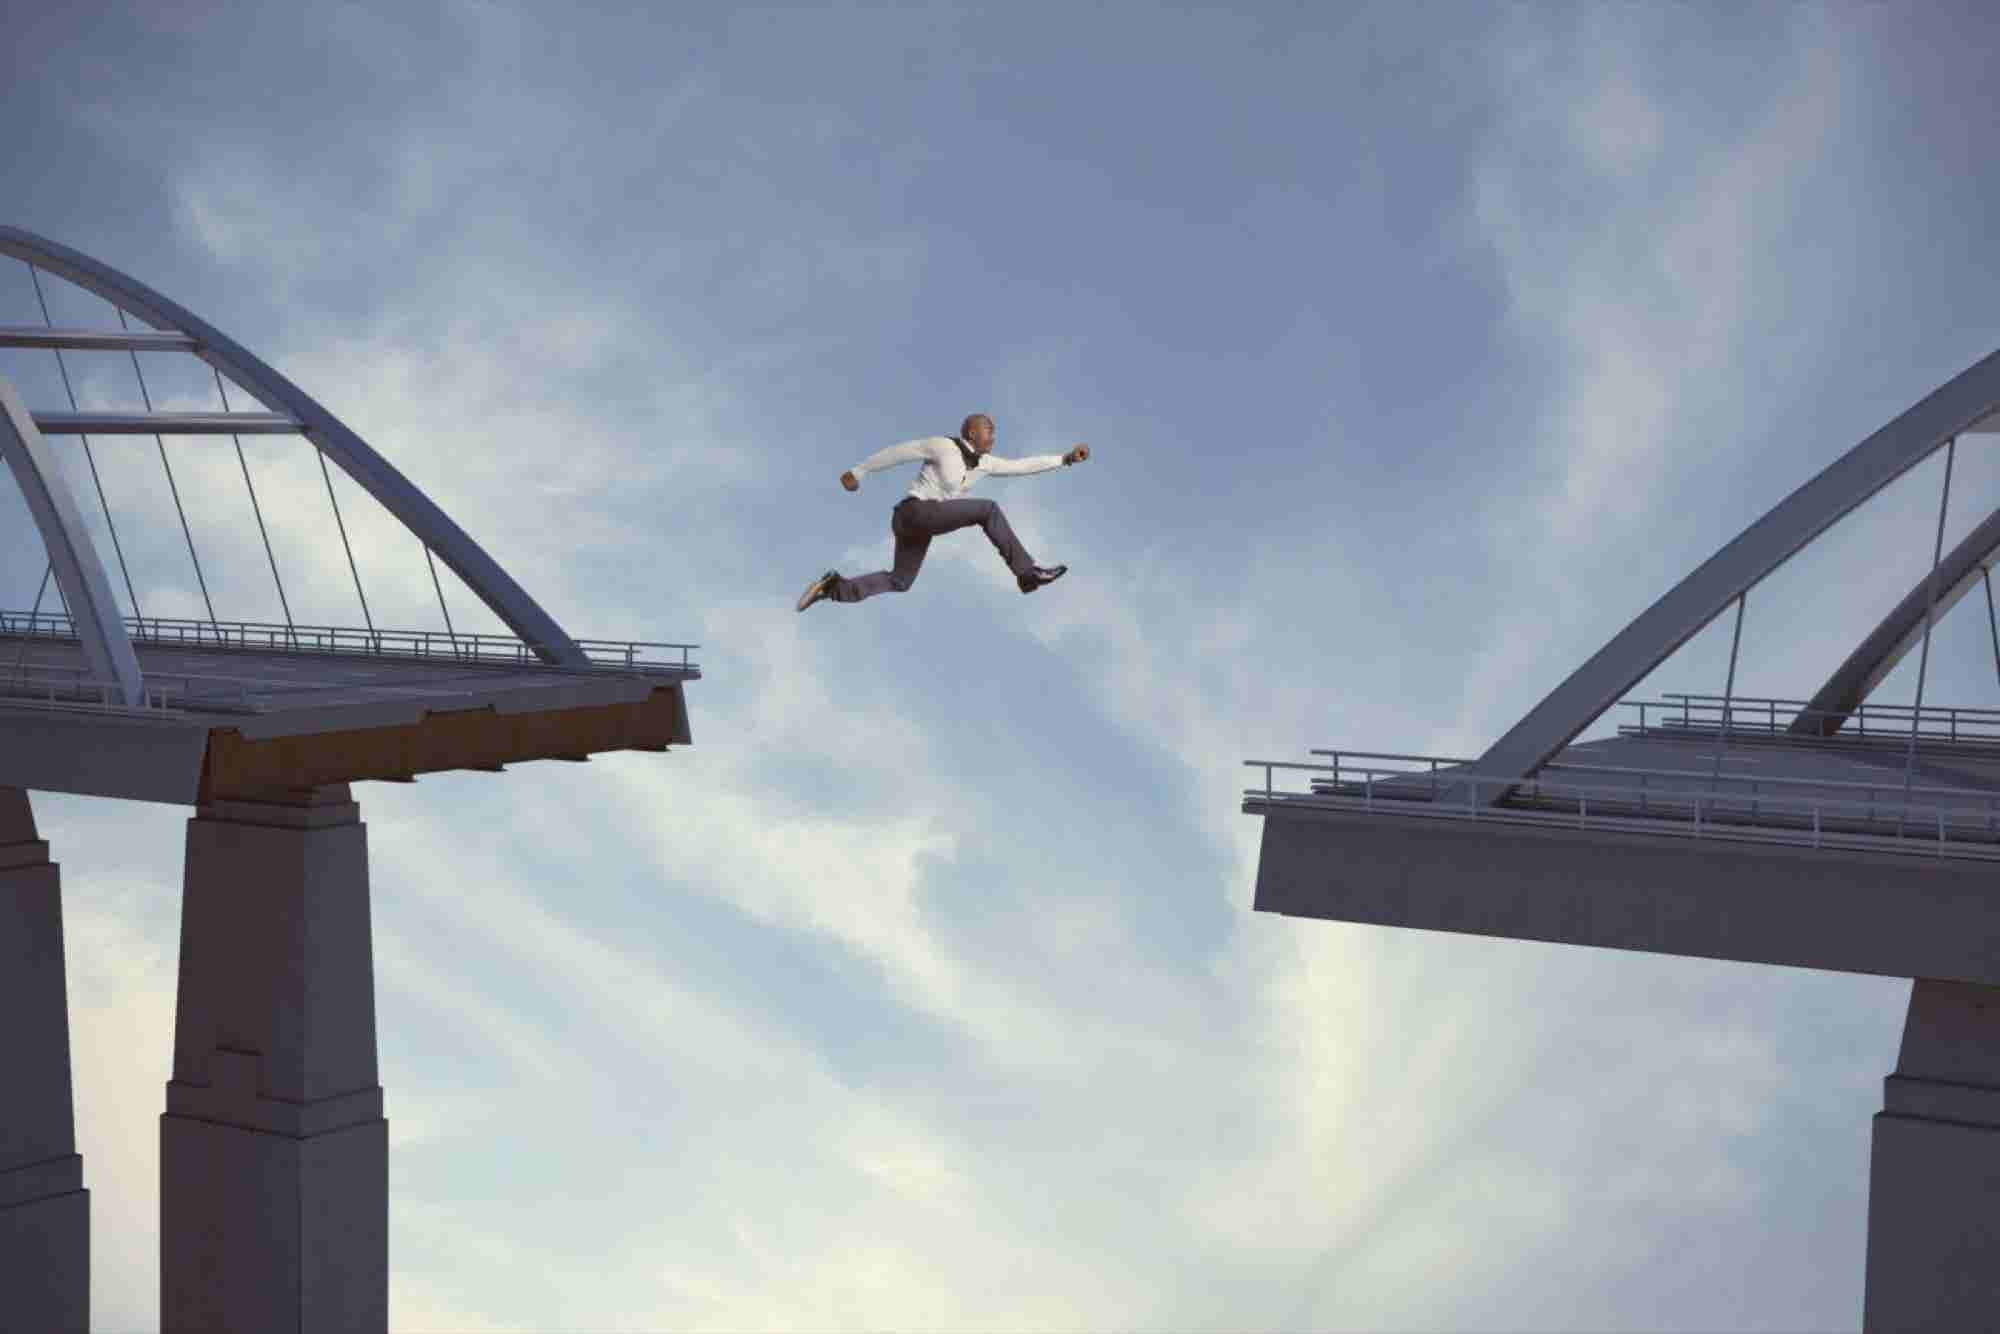 The Upsides Of Downsides: Three Benefits Of Challenging Times In Your Business